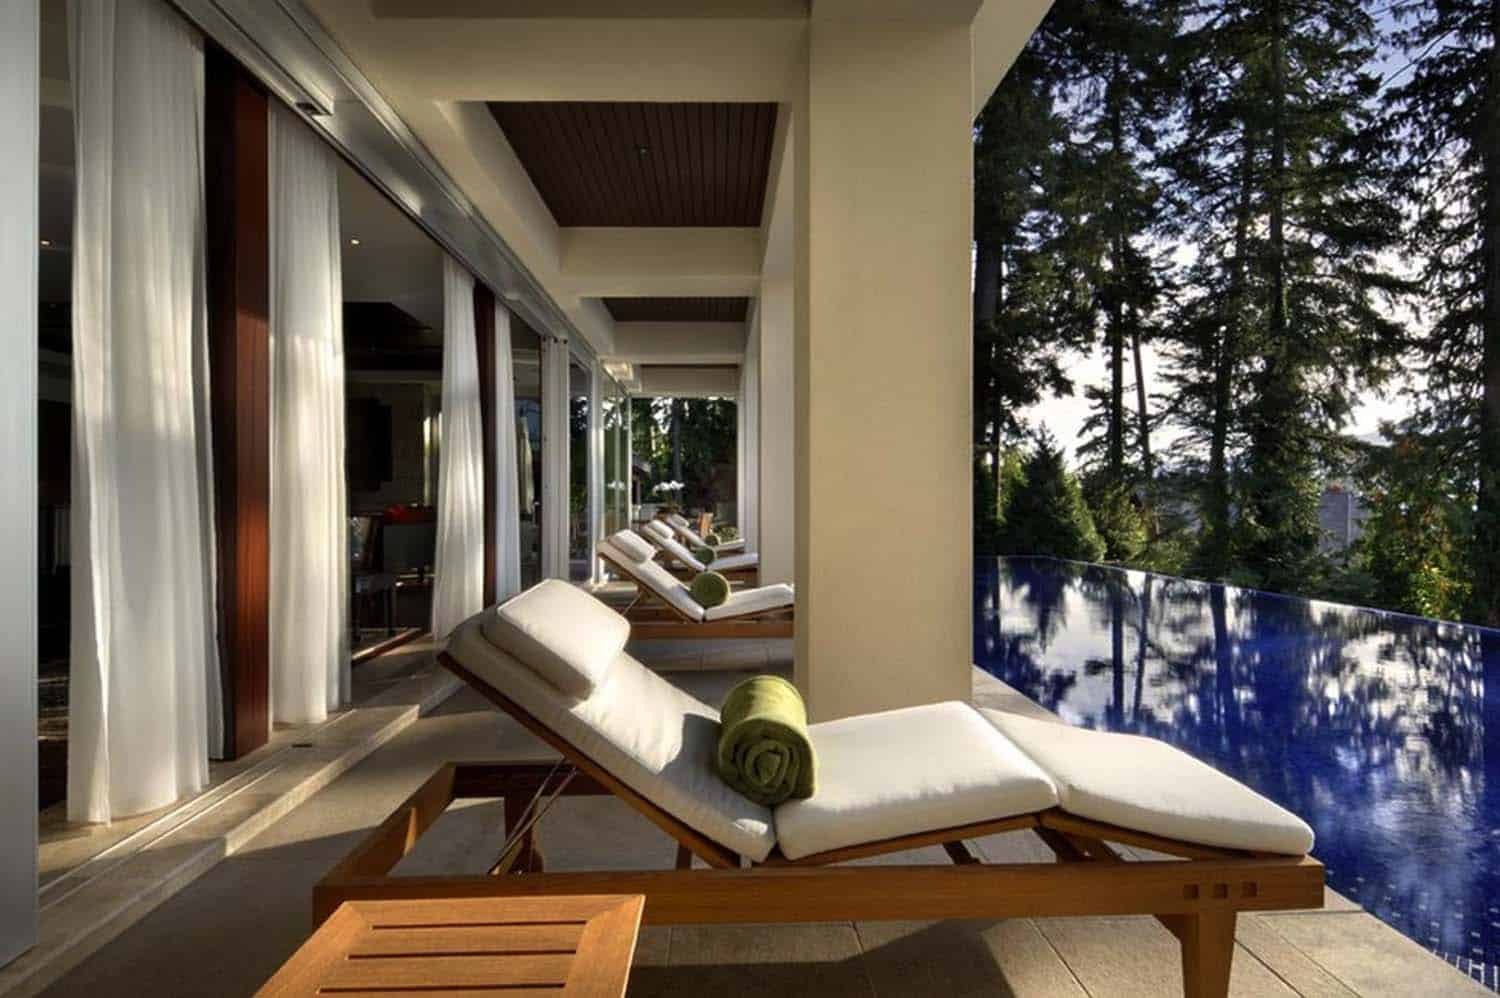 vancouver-island-residence-mckinley-burkart-architects-13-1-kindesign